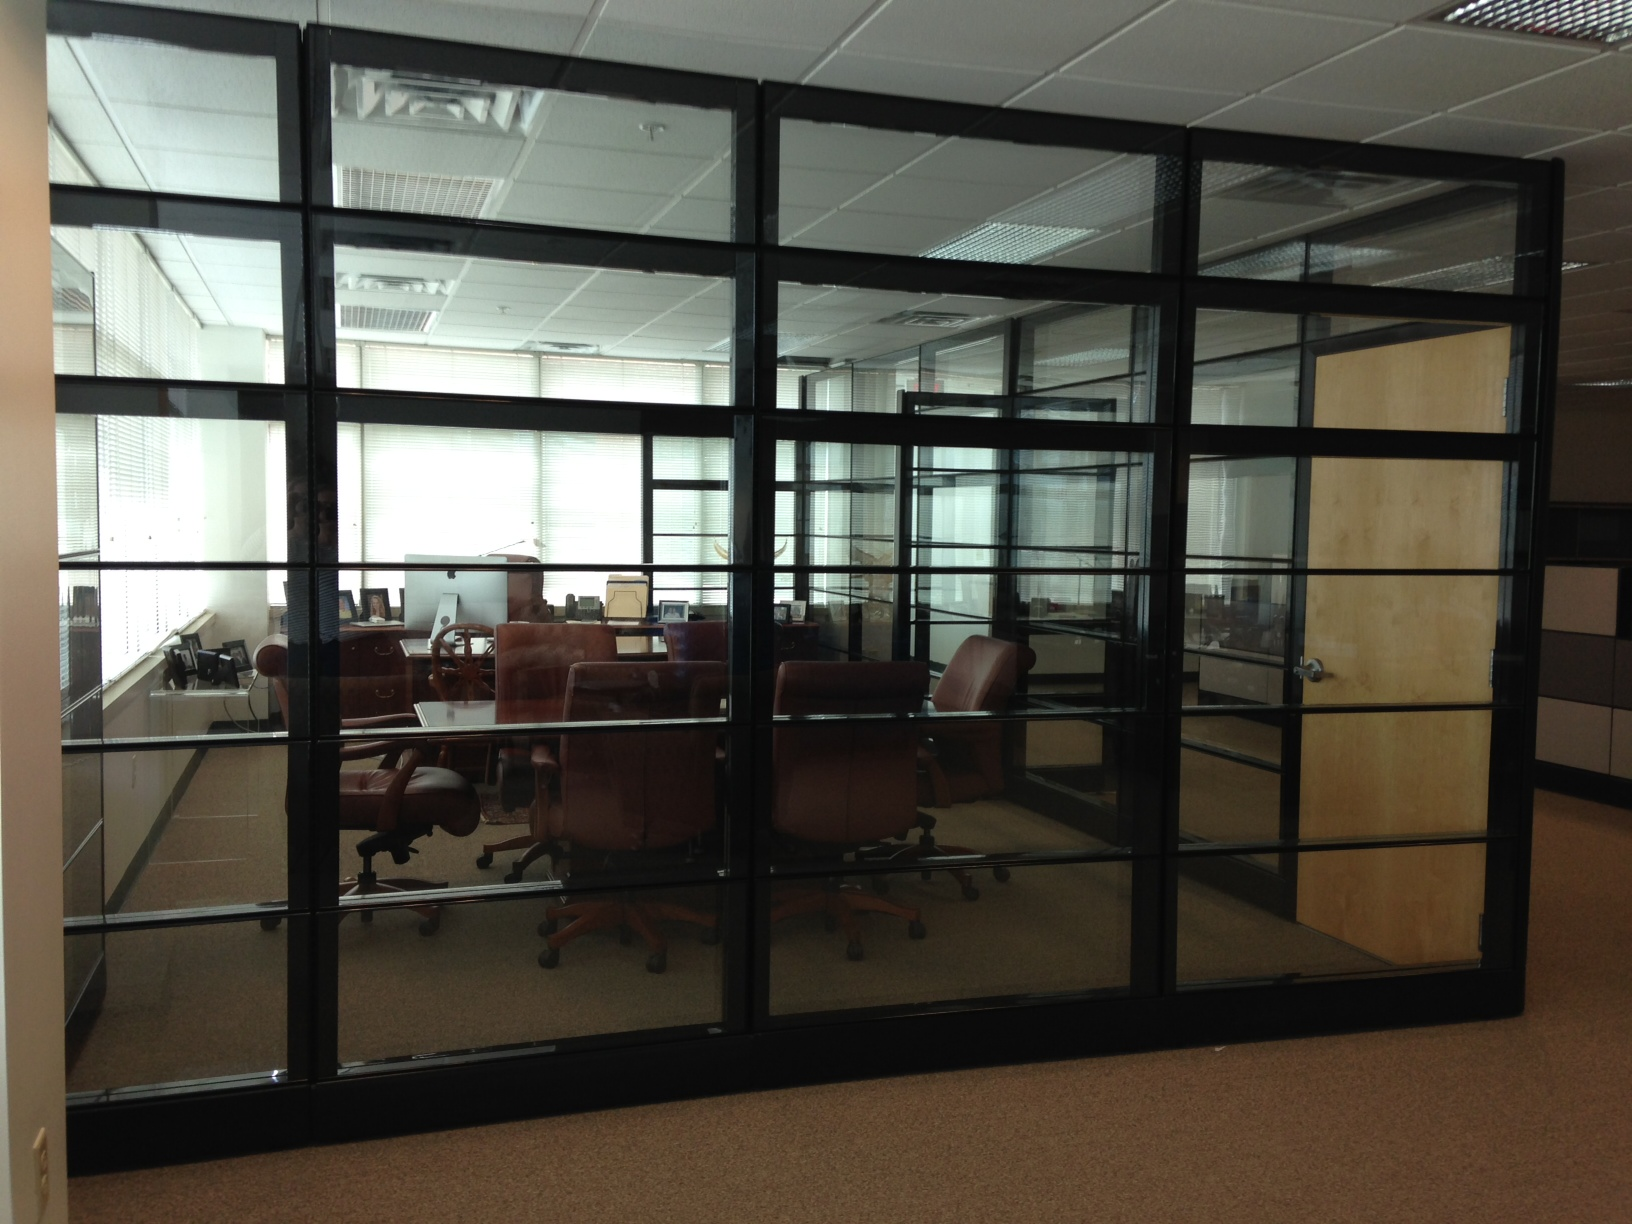 Glazed Office Cubicles : Office cubicles with glass ethosource